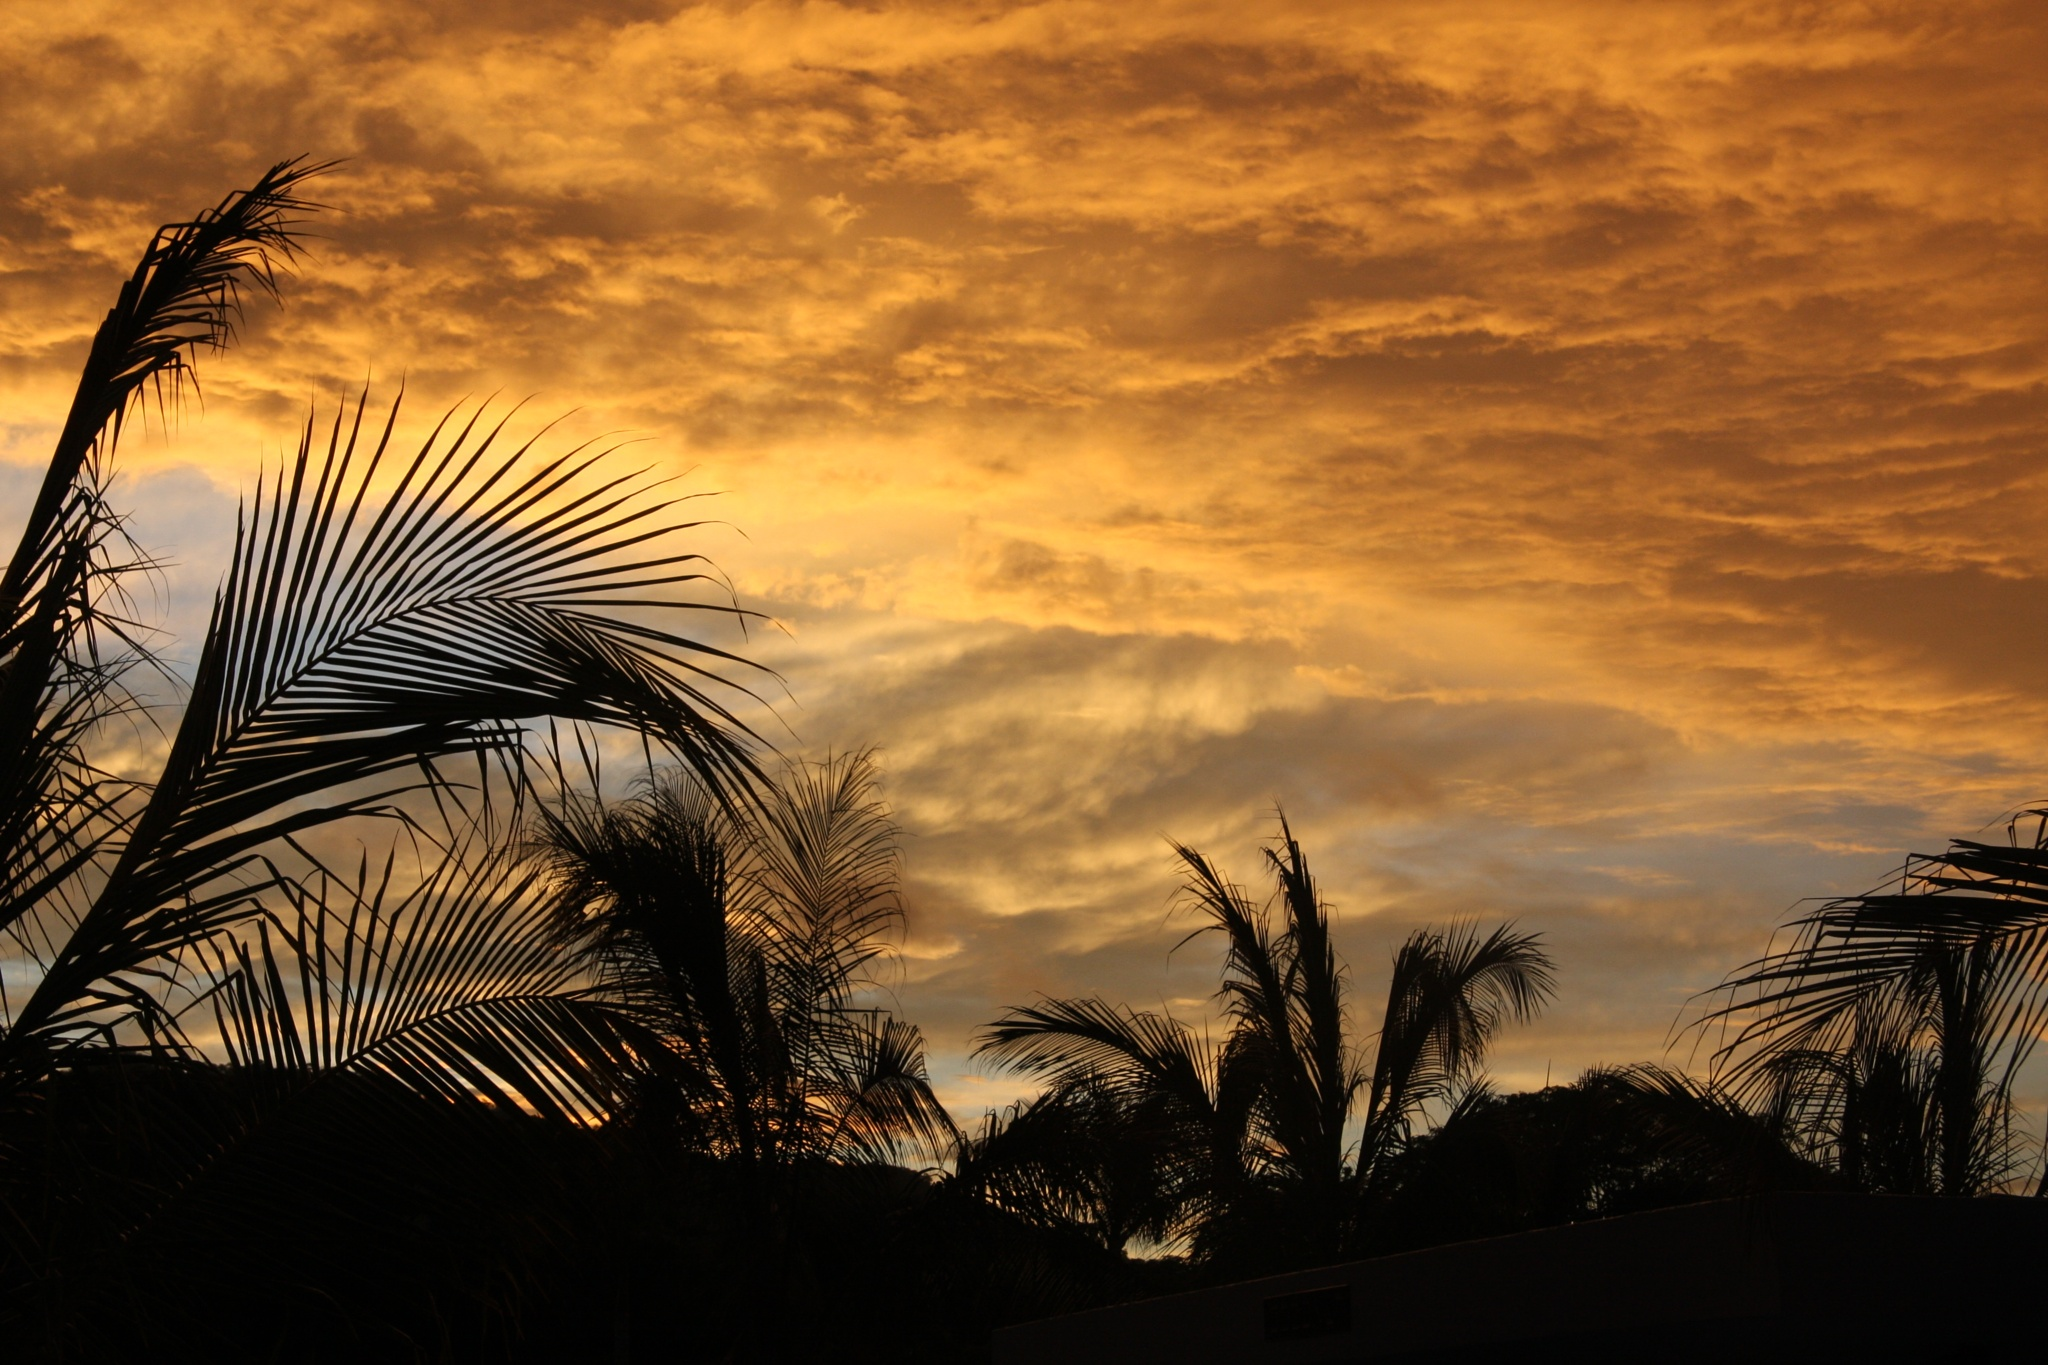 Costa Rica Sunset by Roger Sims